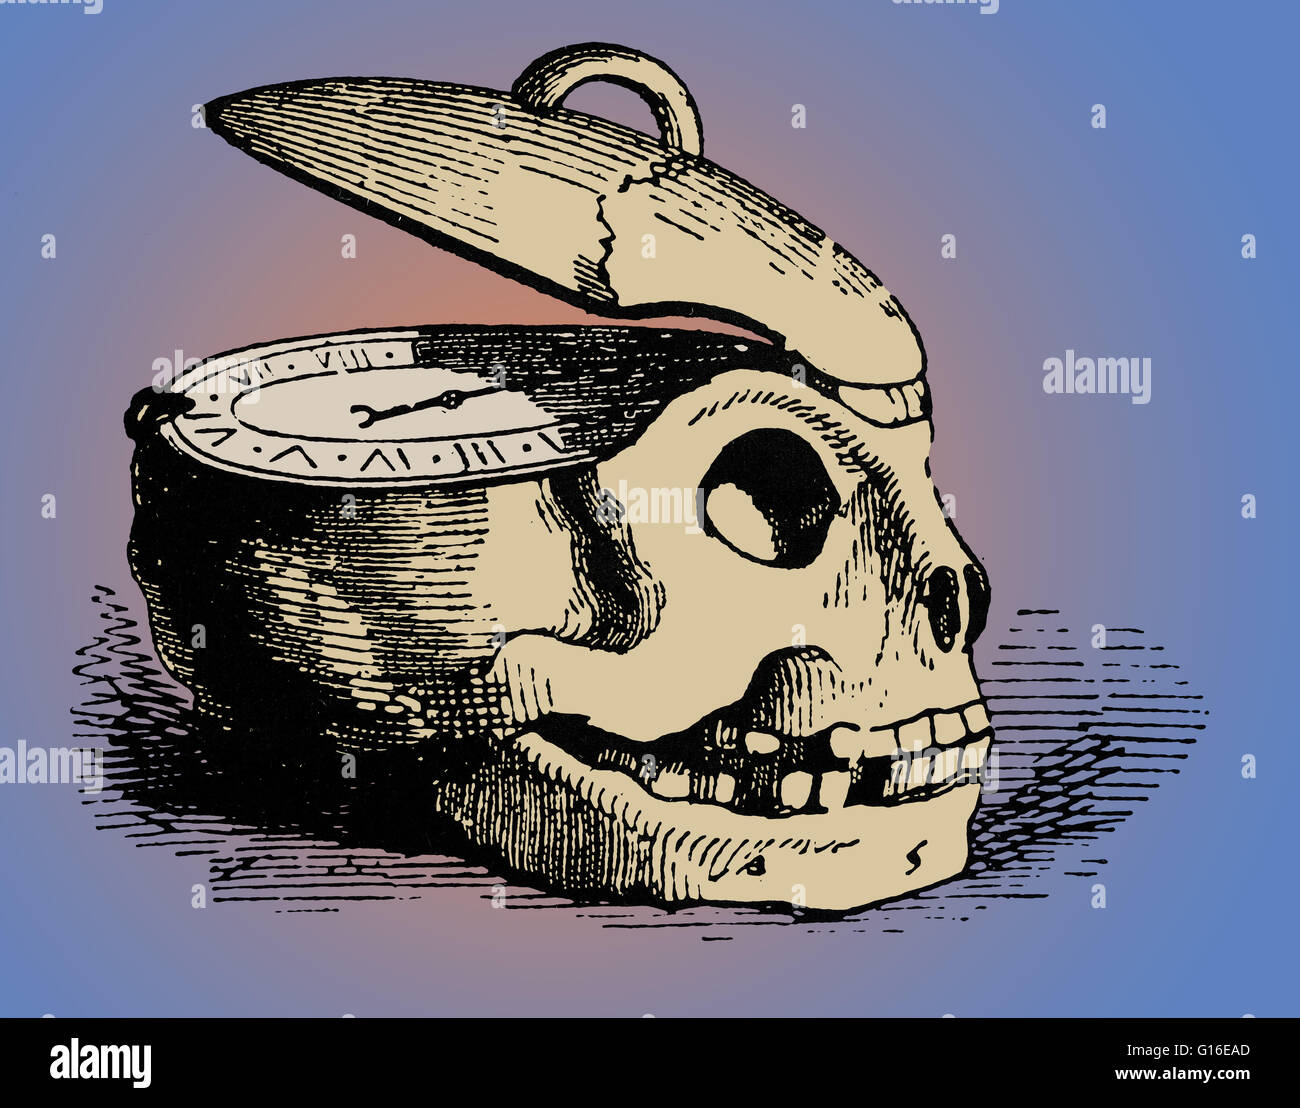 A memento mori (remember that you will die) is an artistic or symbolic reminder of the inevitability of death. The - Stock Image